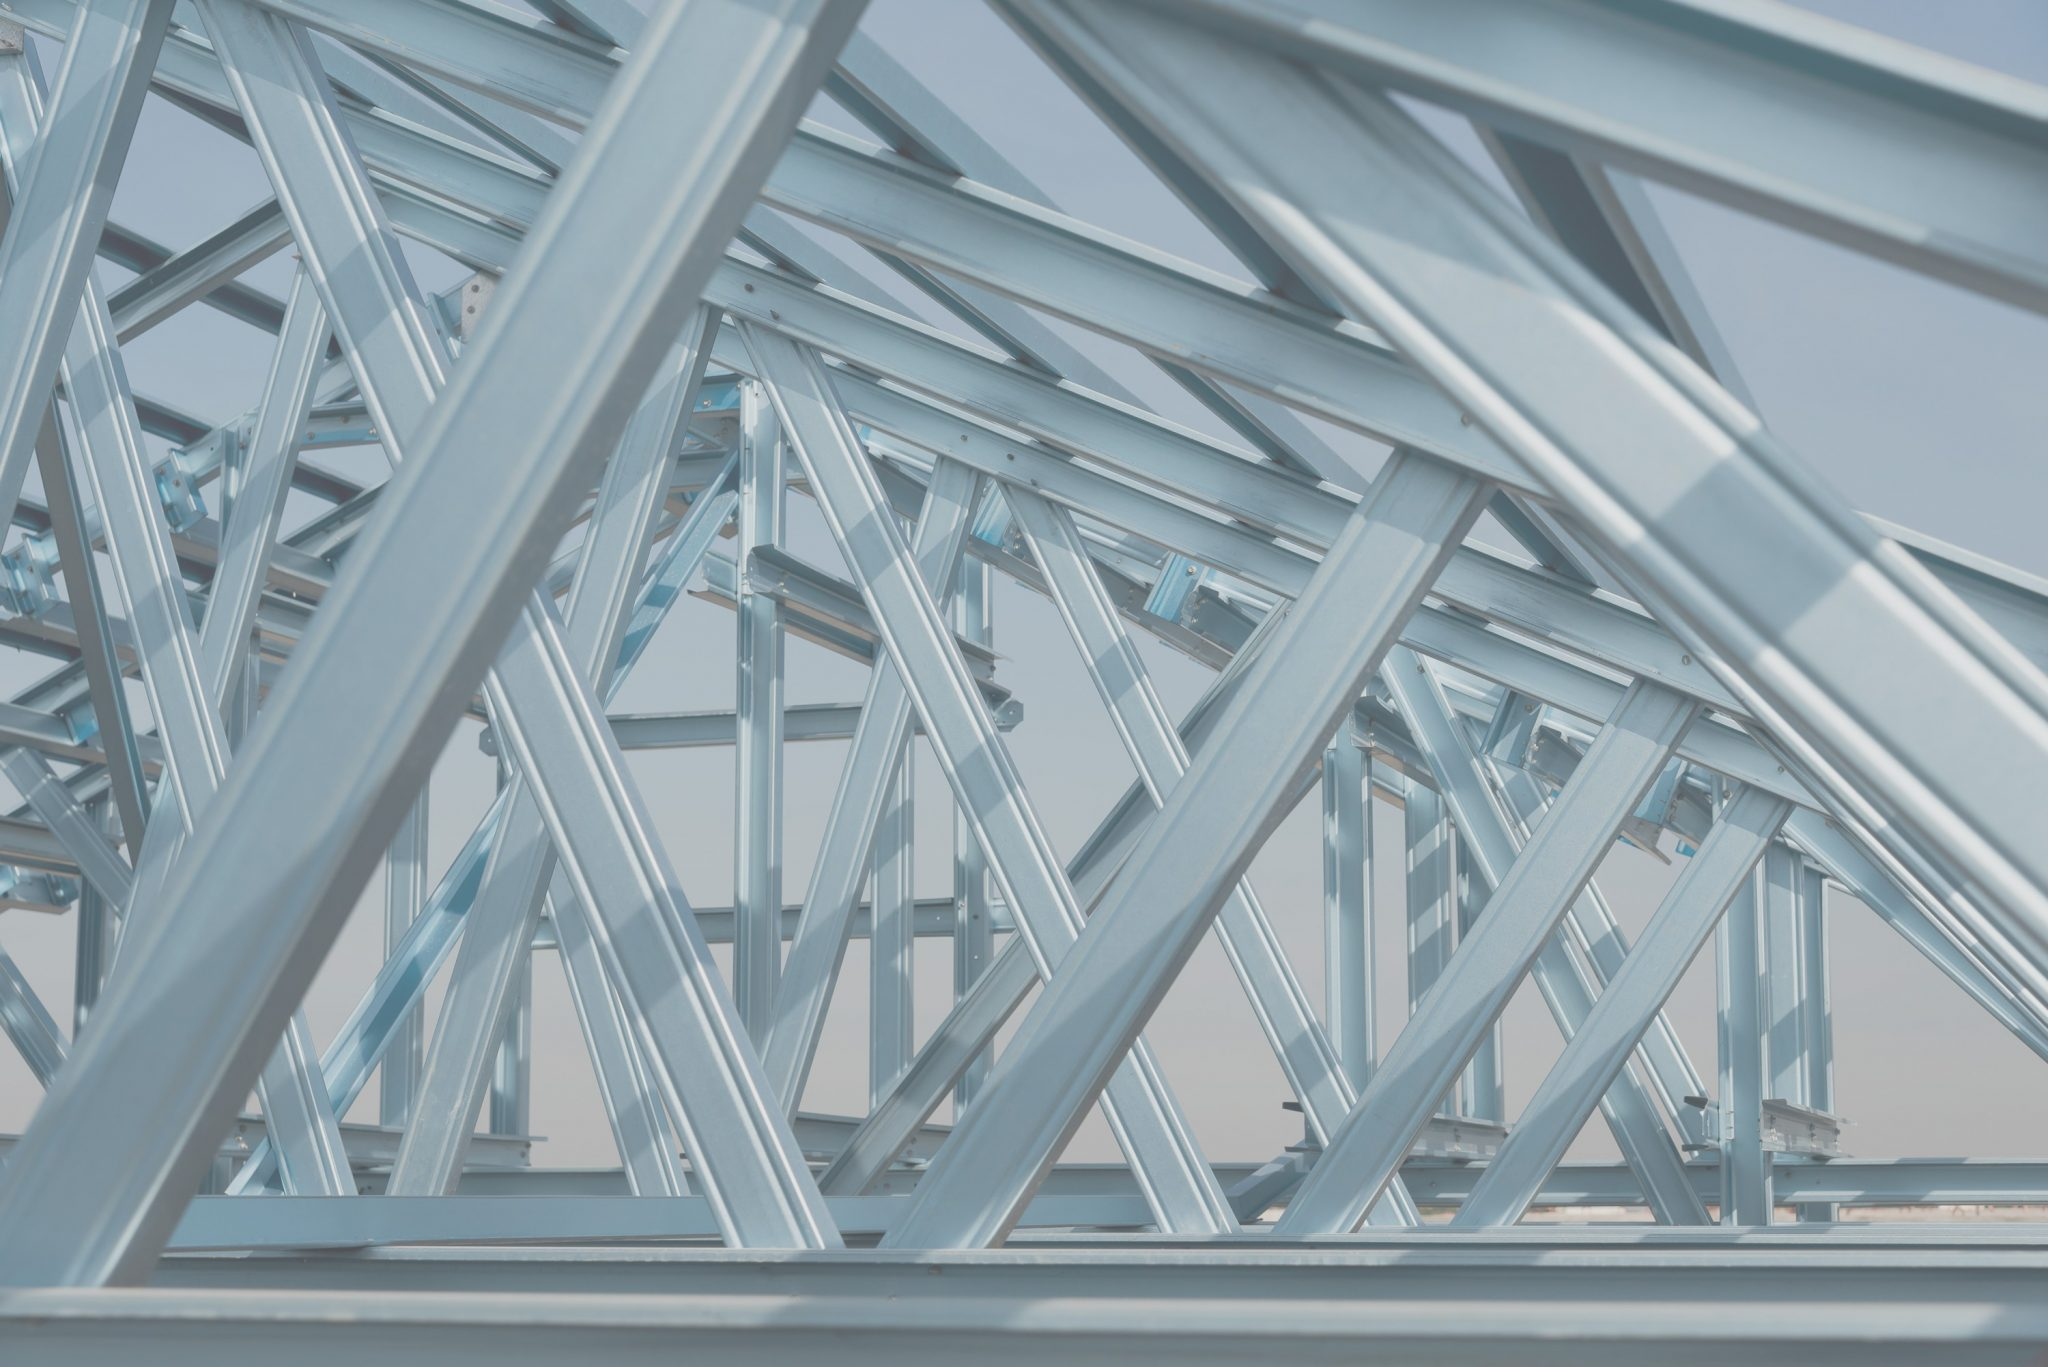 Structural Analysis and Design Software